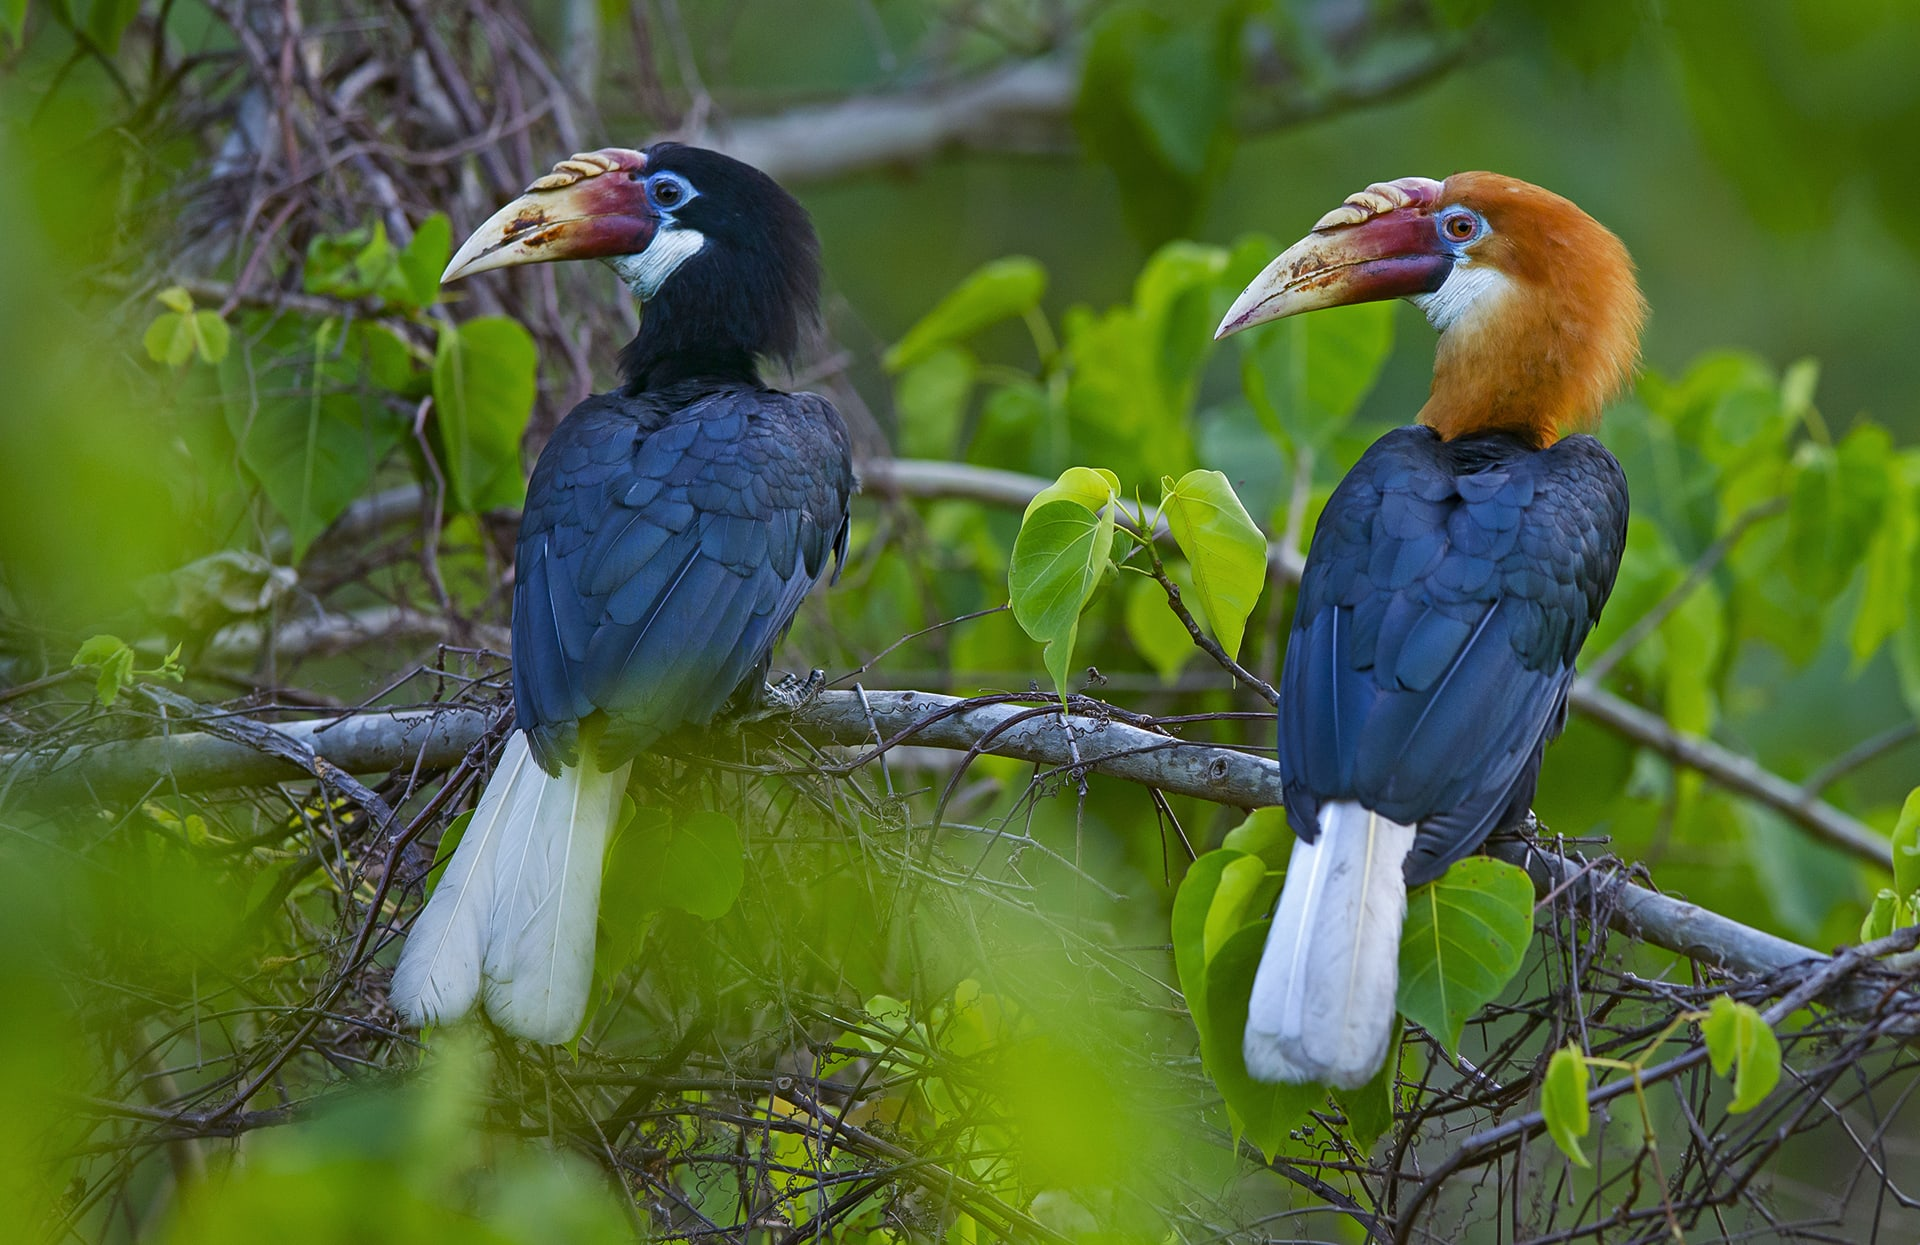 """Males and females of the species are distinct from each other. Males have rufous plumage on their head and neck, while females have blackish feathers. Both sexes have white tails, white throat patches, and similarly coloured beaks. Narcondam hornbills are monogamous, though we do not know if they are """"seasonally monogamous"""" or """"lifetime monogamous"""" (like most other hornbill species). """"So far, we have only short-term research to rely on, for information,"""" says Dr Manchi, """"so we cannot say for sure."""""""